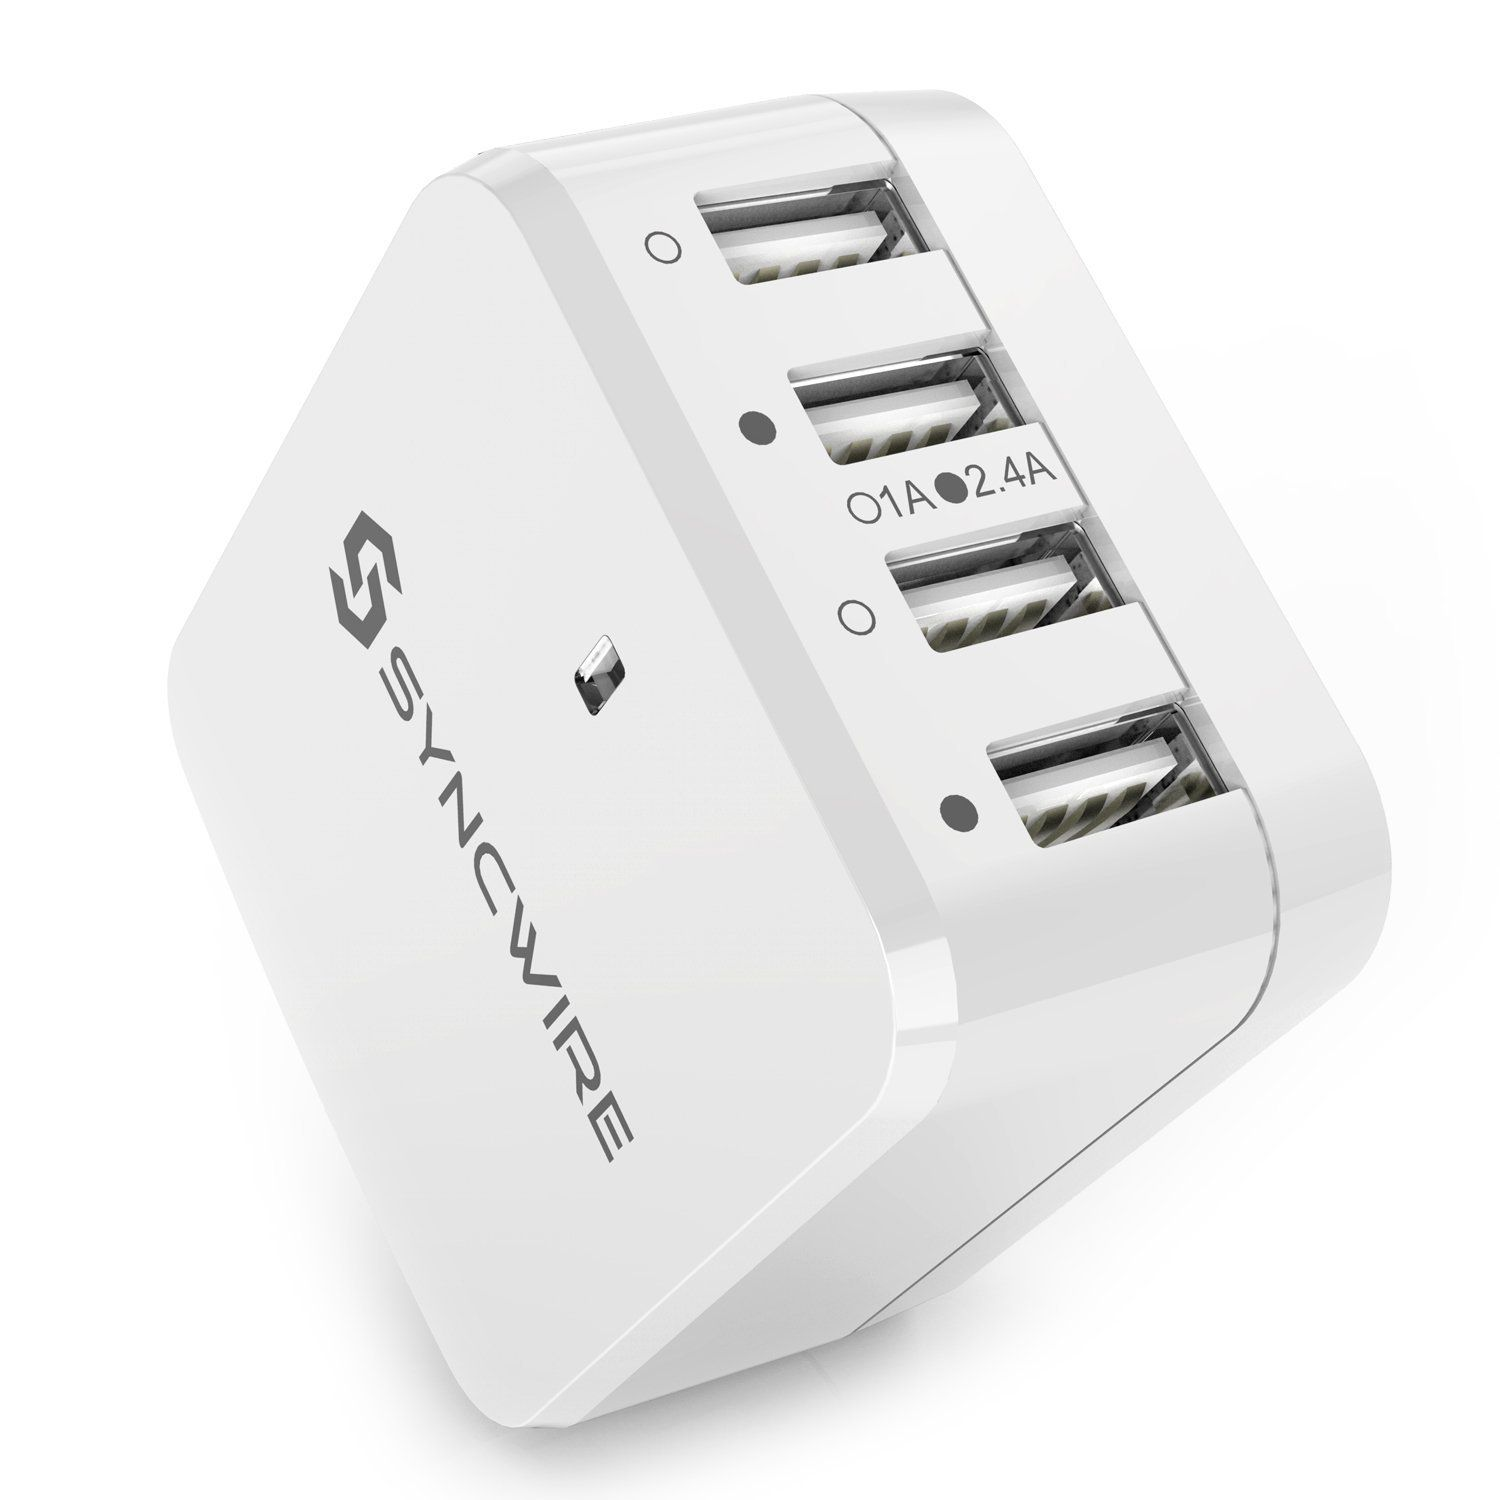 The 10 Best Travel Adapters To Buy In 2018 Wiring Multi Function Adapter 4 Flat 7 Blade